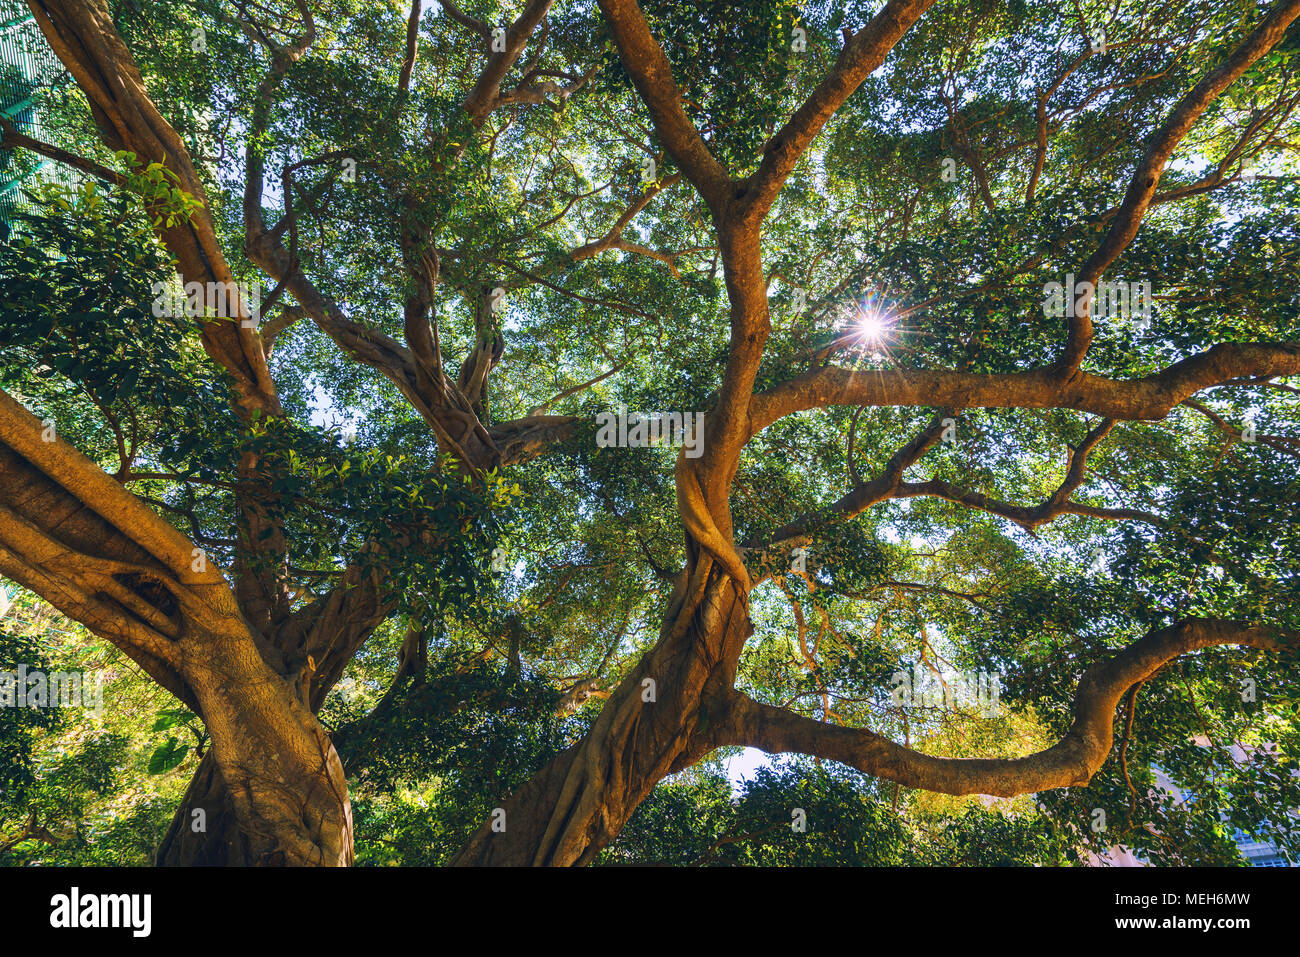 Sun rays light shines through trees and branches of jungle forest, China - Stock Image